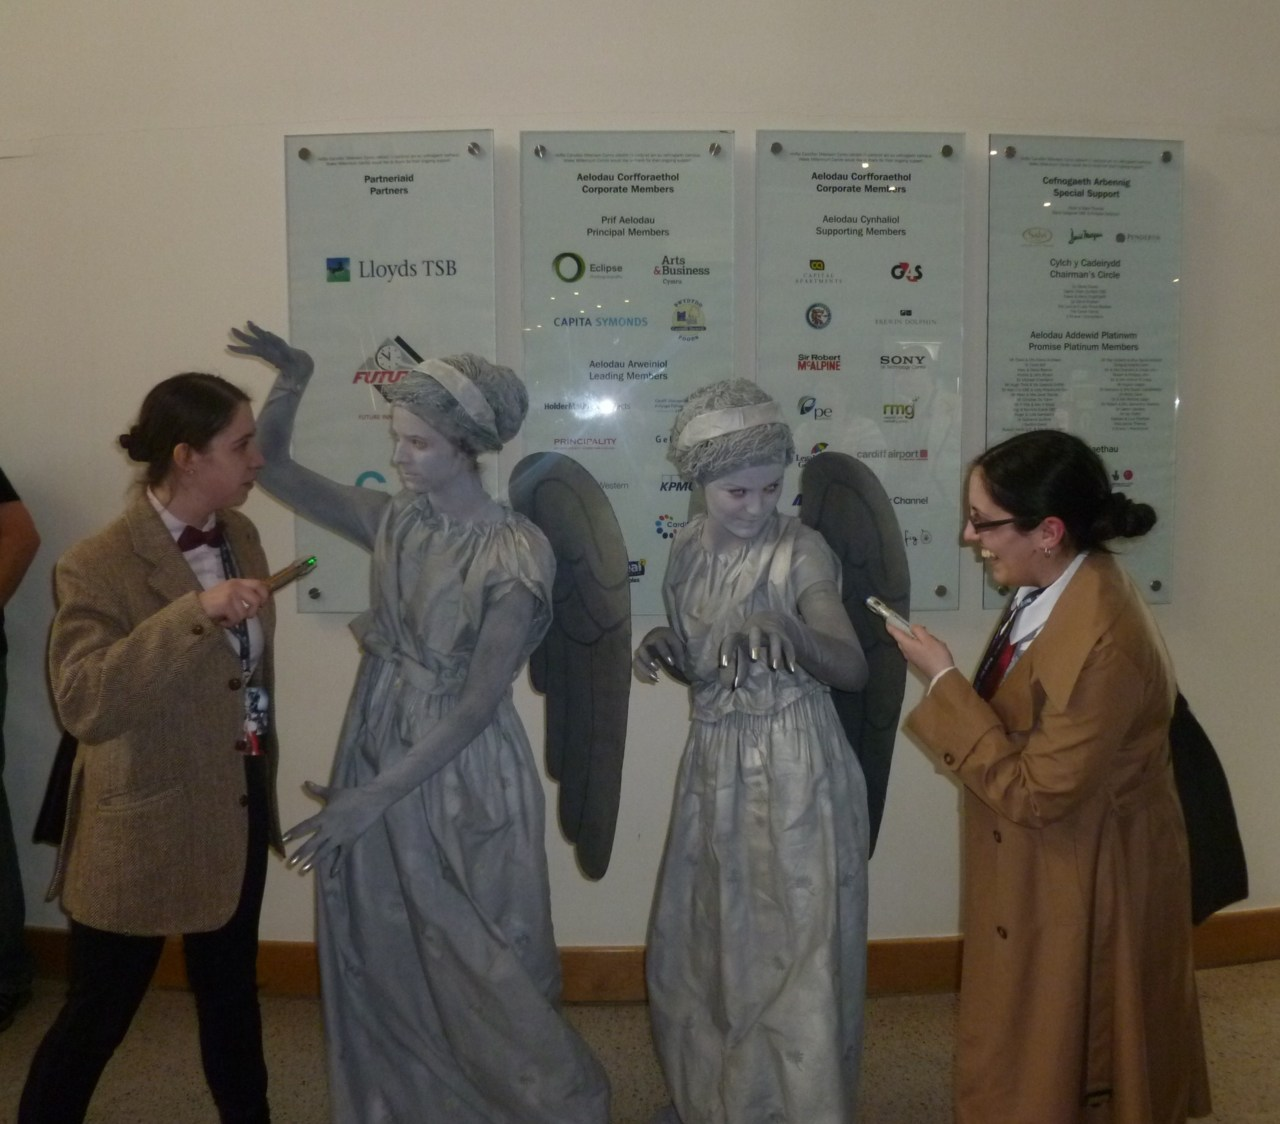 Us and two weeping angels - whoever you are, YOUR COSTUMES WERE UTTERLY AMAZING.